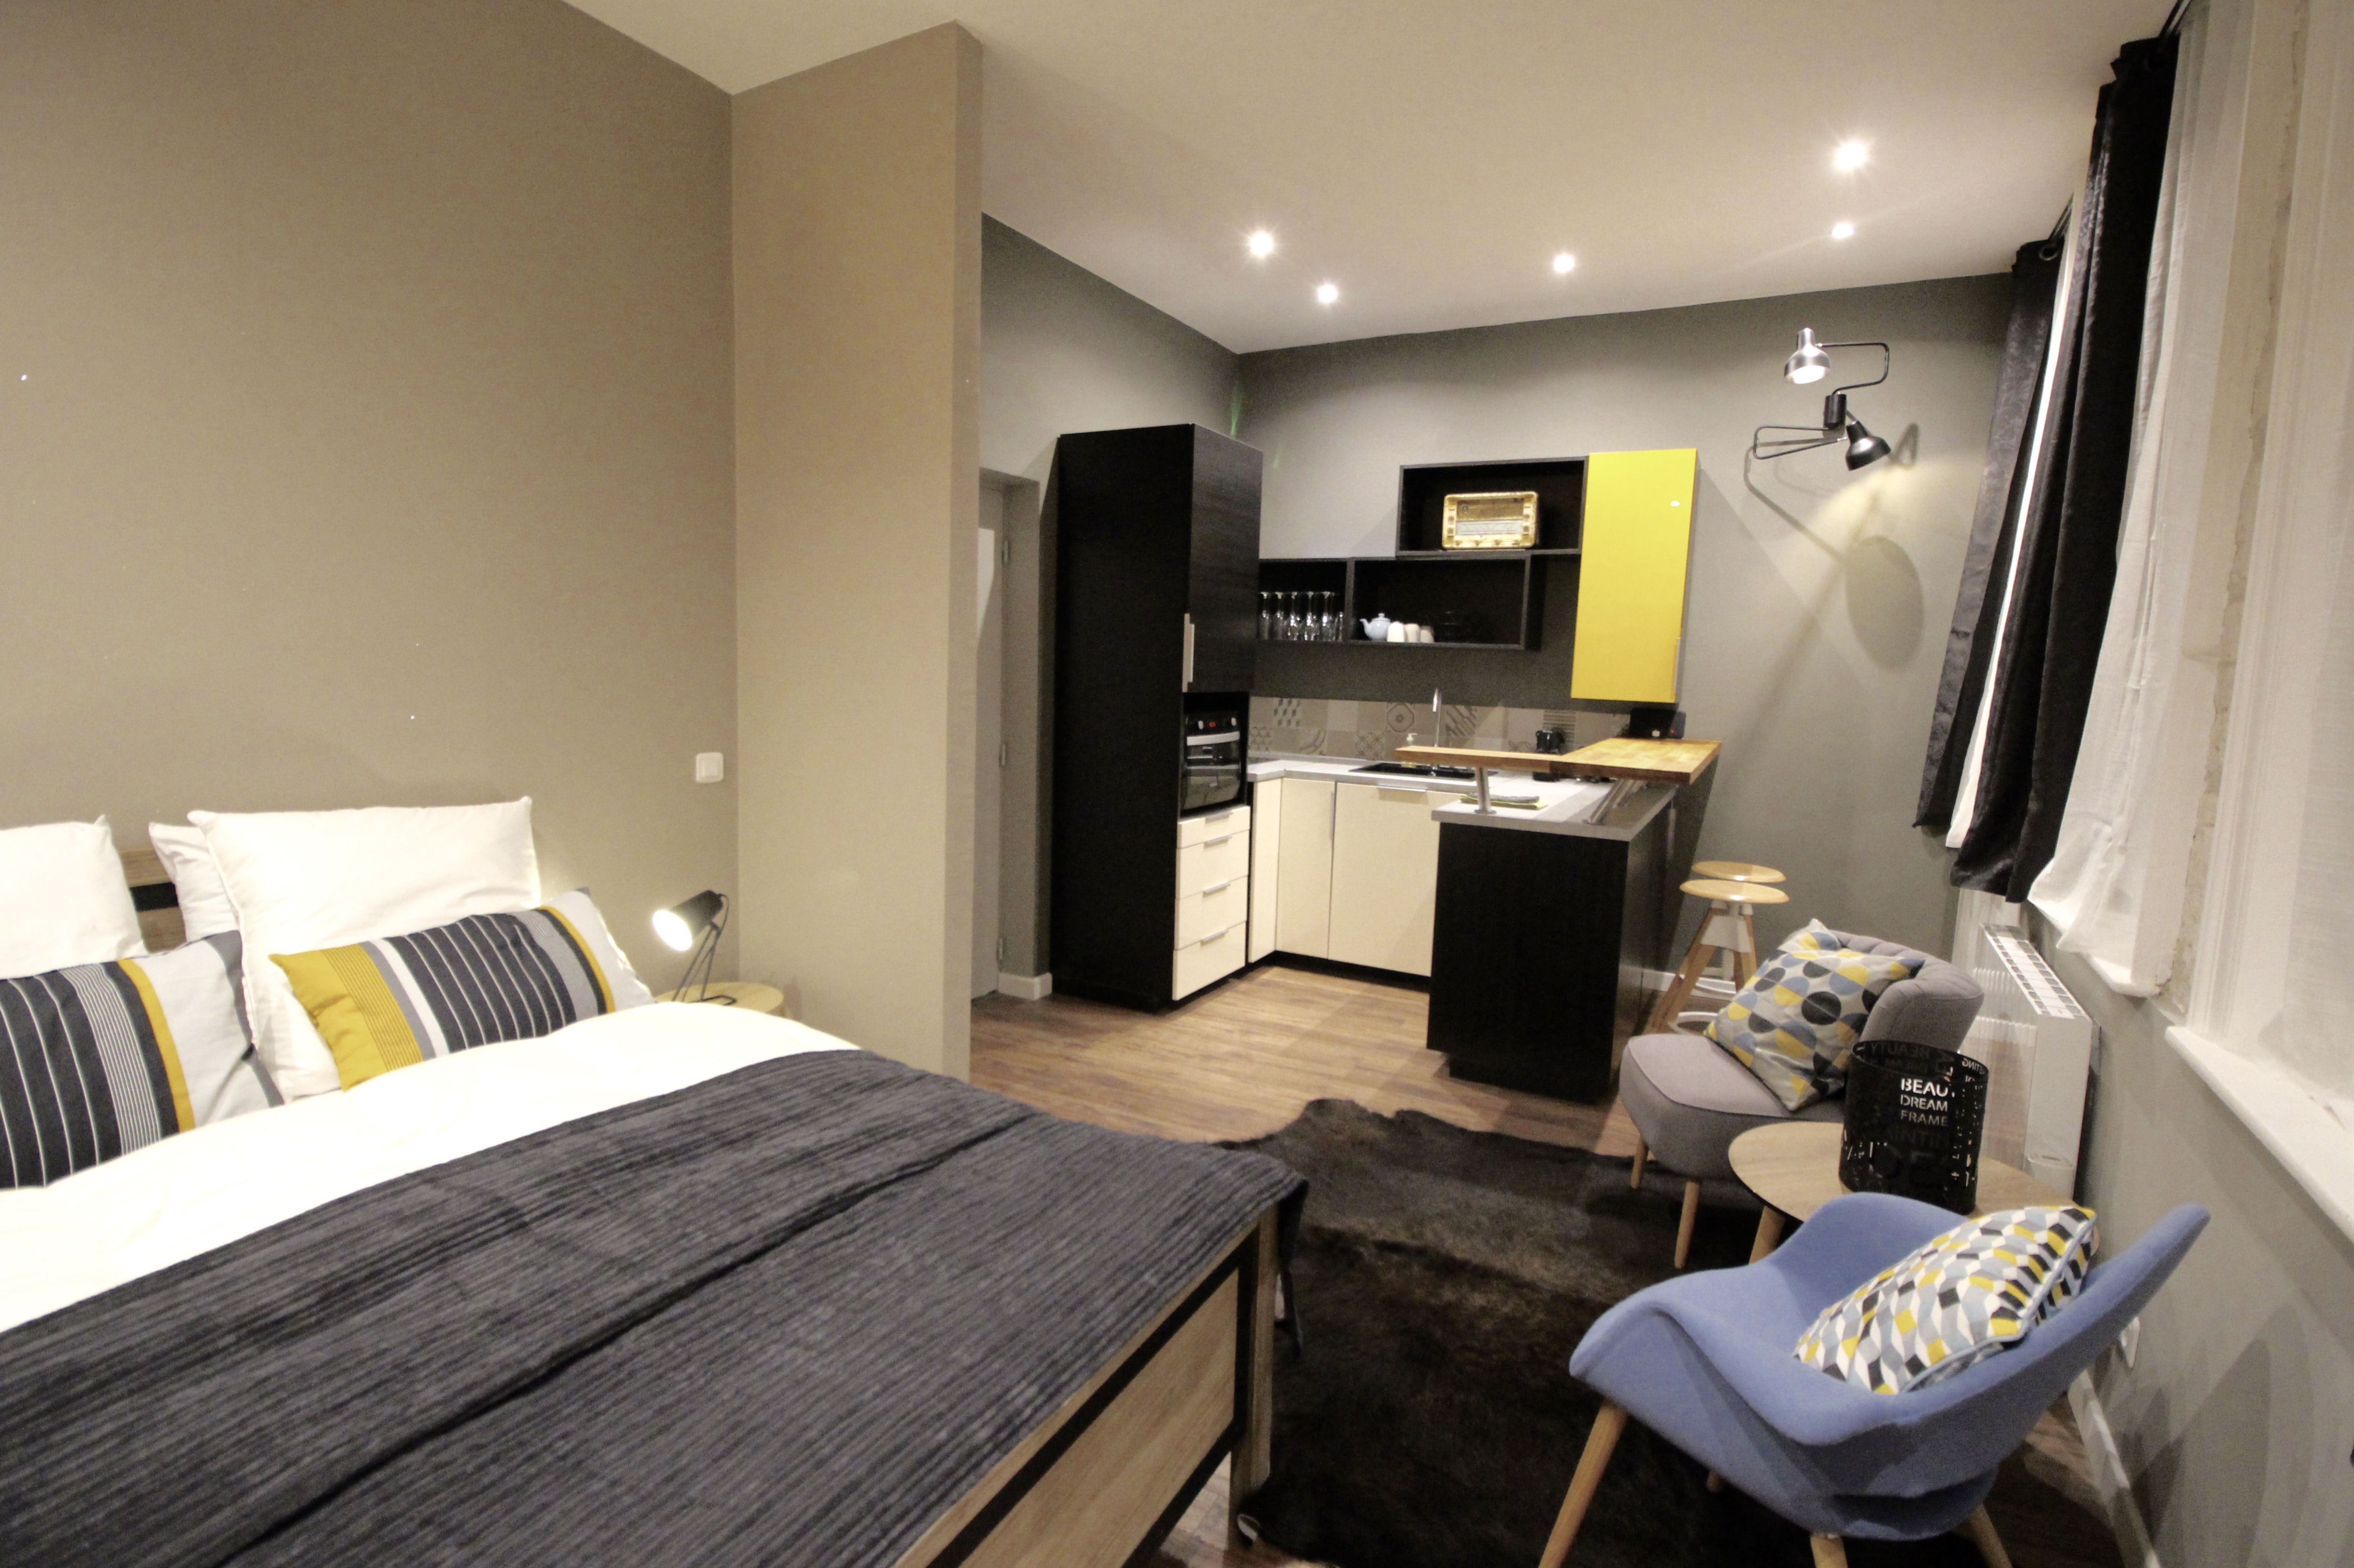 Appart Hotel Lille Artsy Location Meublee Lille Location Logement Appartement Meuble